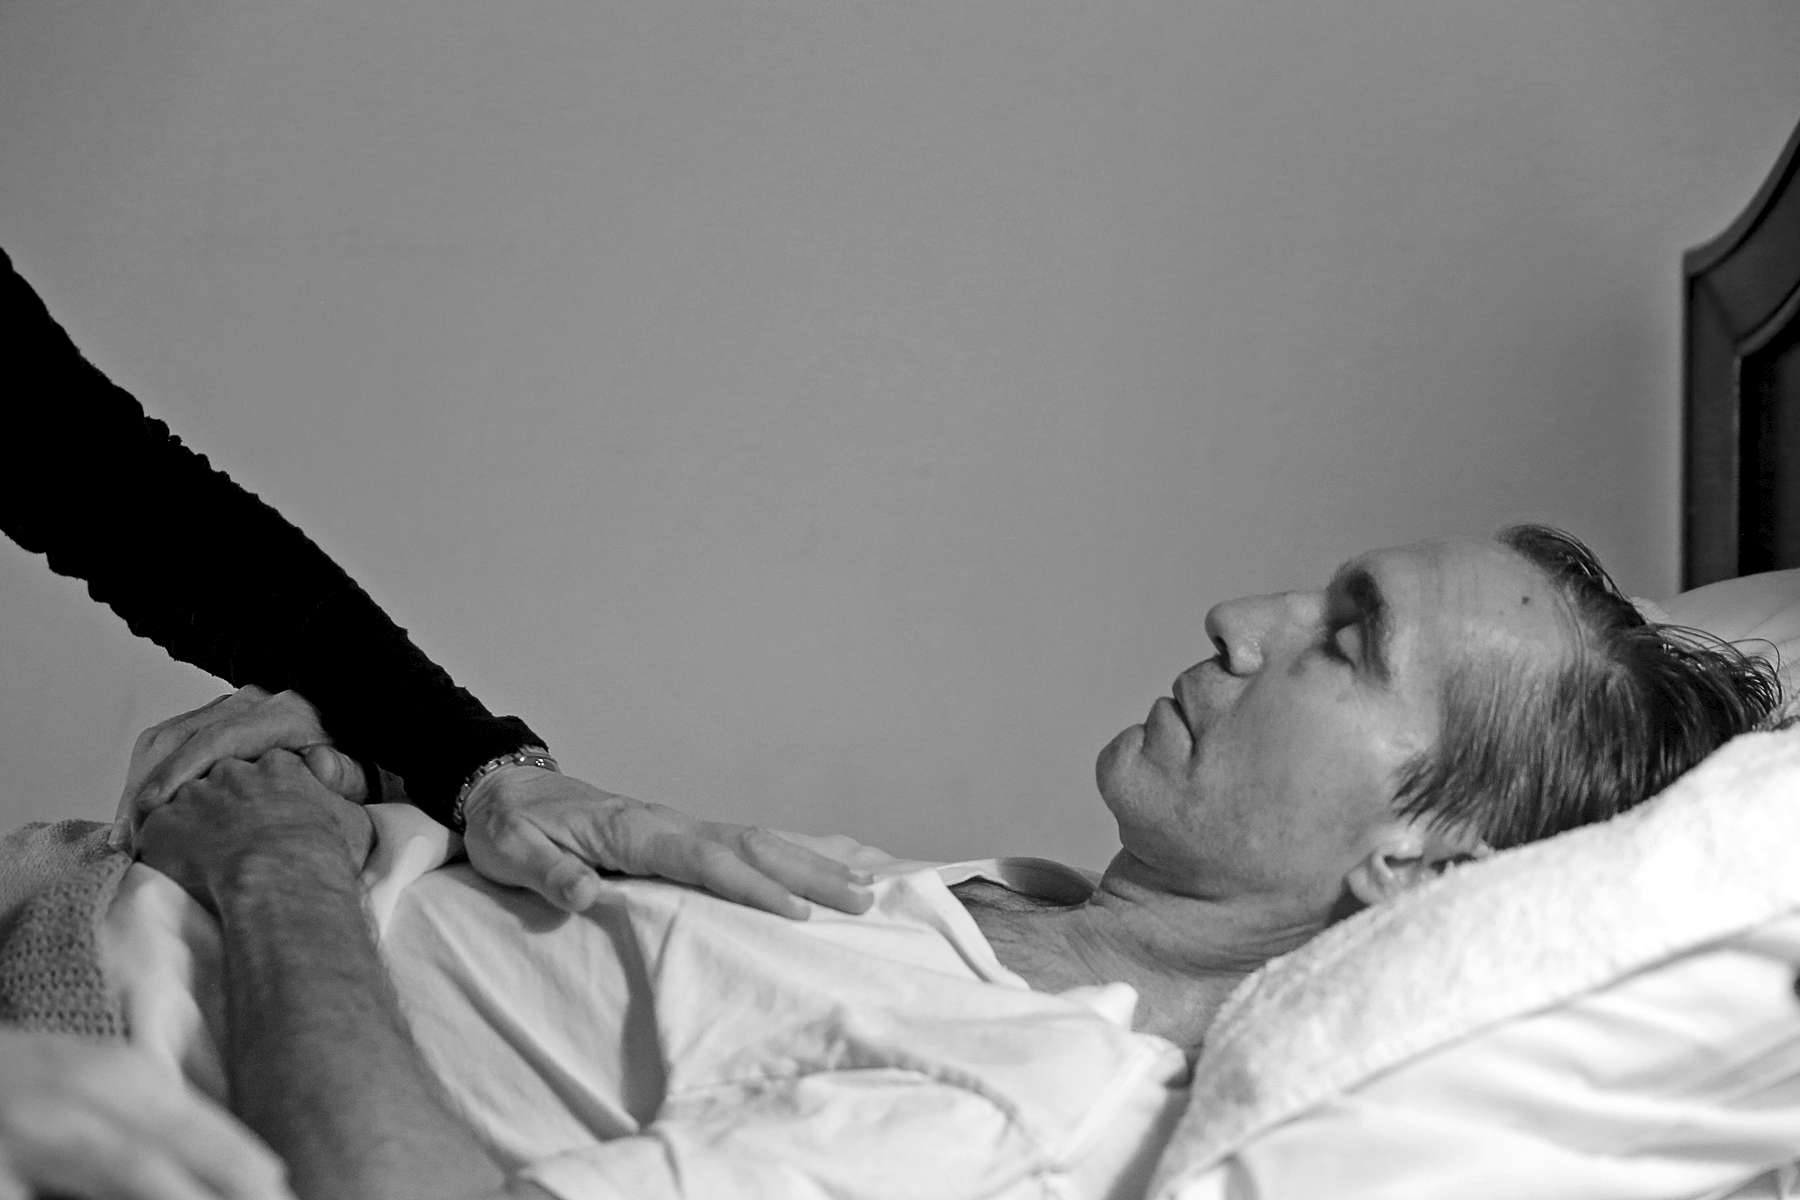 Karen Garner comforts Jim as he lays in bed at Commonwealth Assisted Living in Hampton Saturday March 26, 2016. Jim died from Alzheimer's April 2, 2016. Jim was diagnosed by the National Institute of Health in 2011 with {quote}mild cognitive impairment,{quote} the precursor to early-onset Alzheimer's disease. The genetically pre-determined disease has devastated his family--his mother died of the disease at age 61, his older brother at 52.